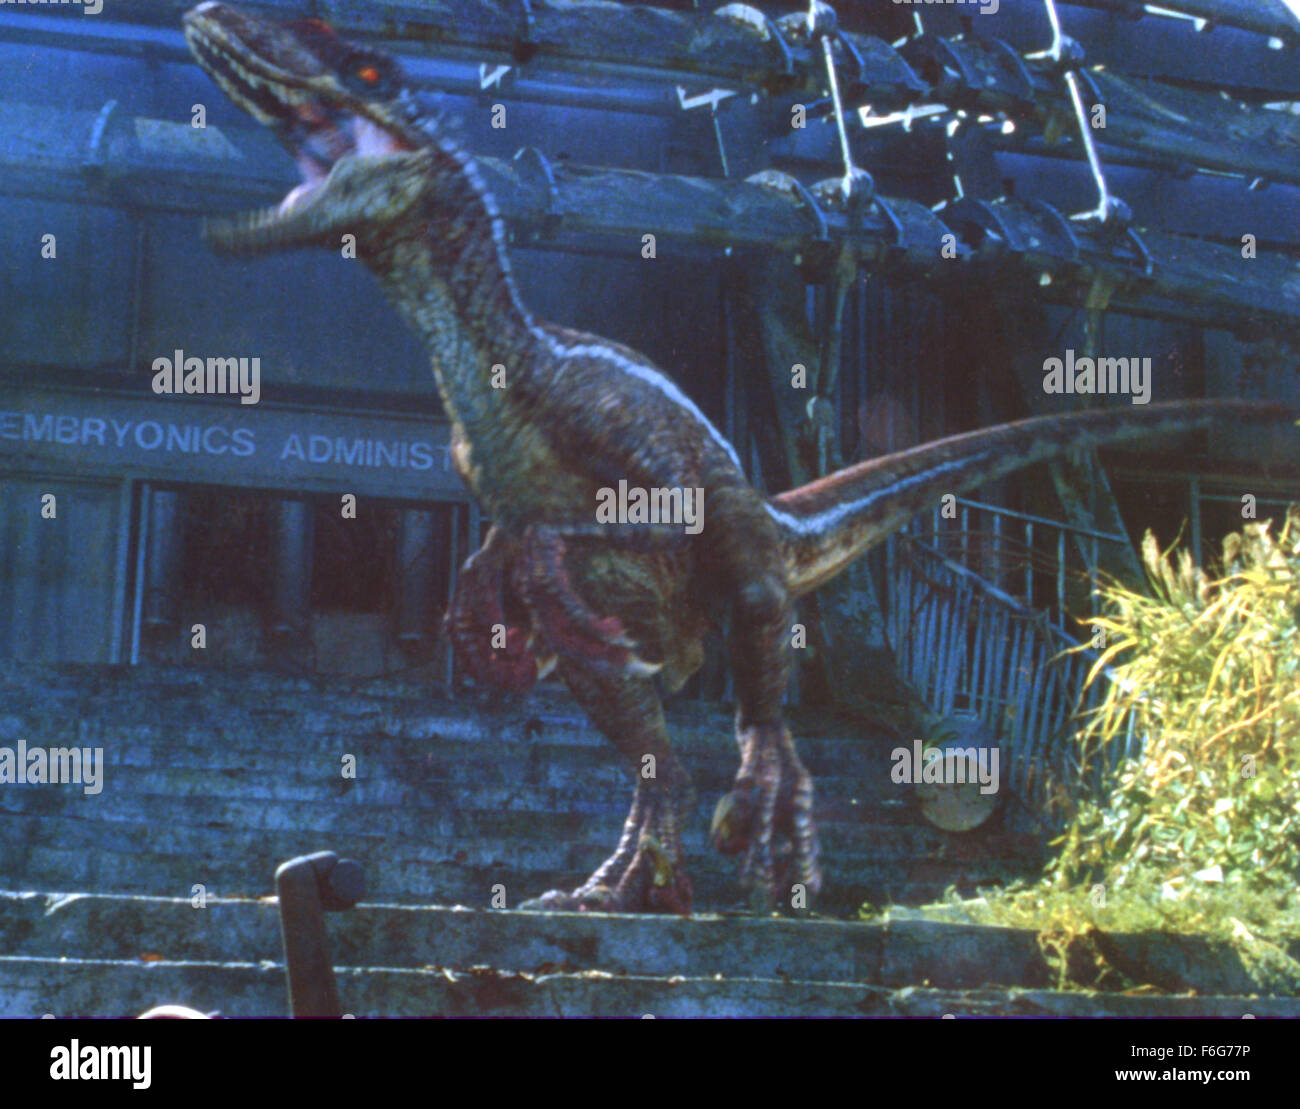 The Lost World Jurassic Park High Resolution Stock Photography And Images Alamy